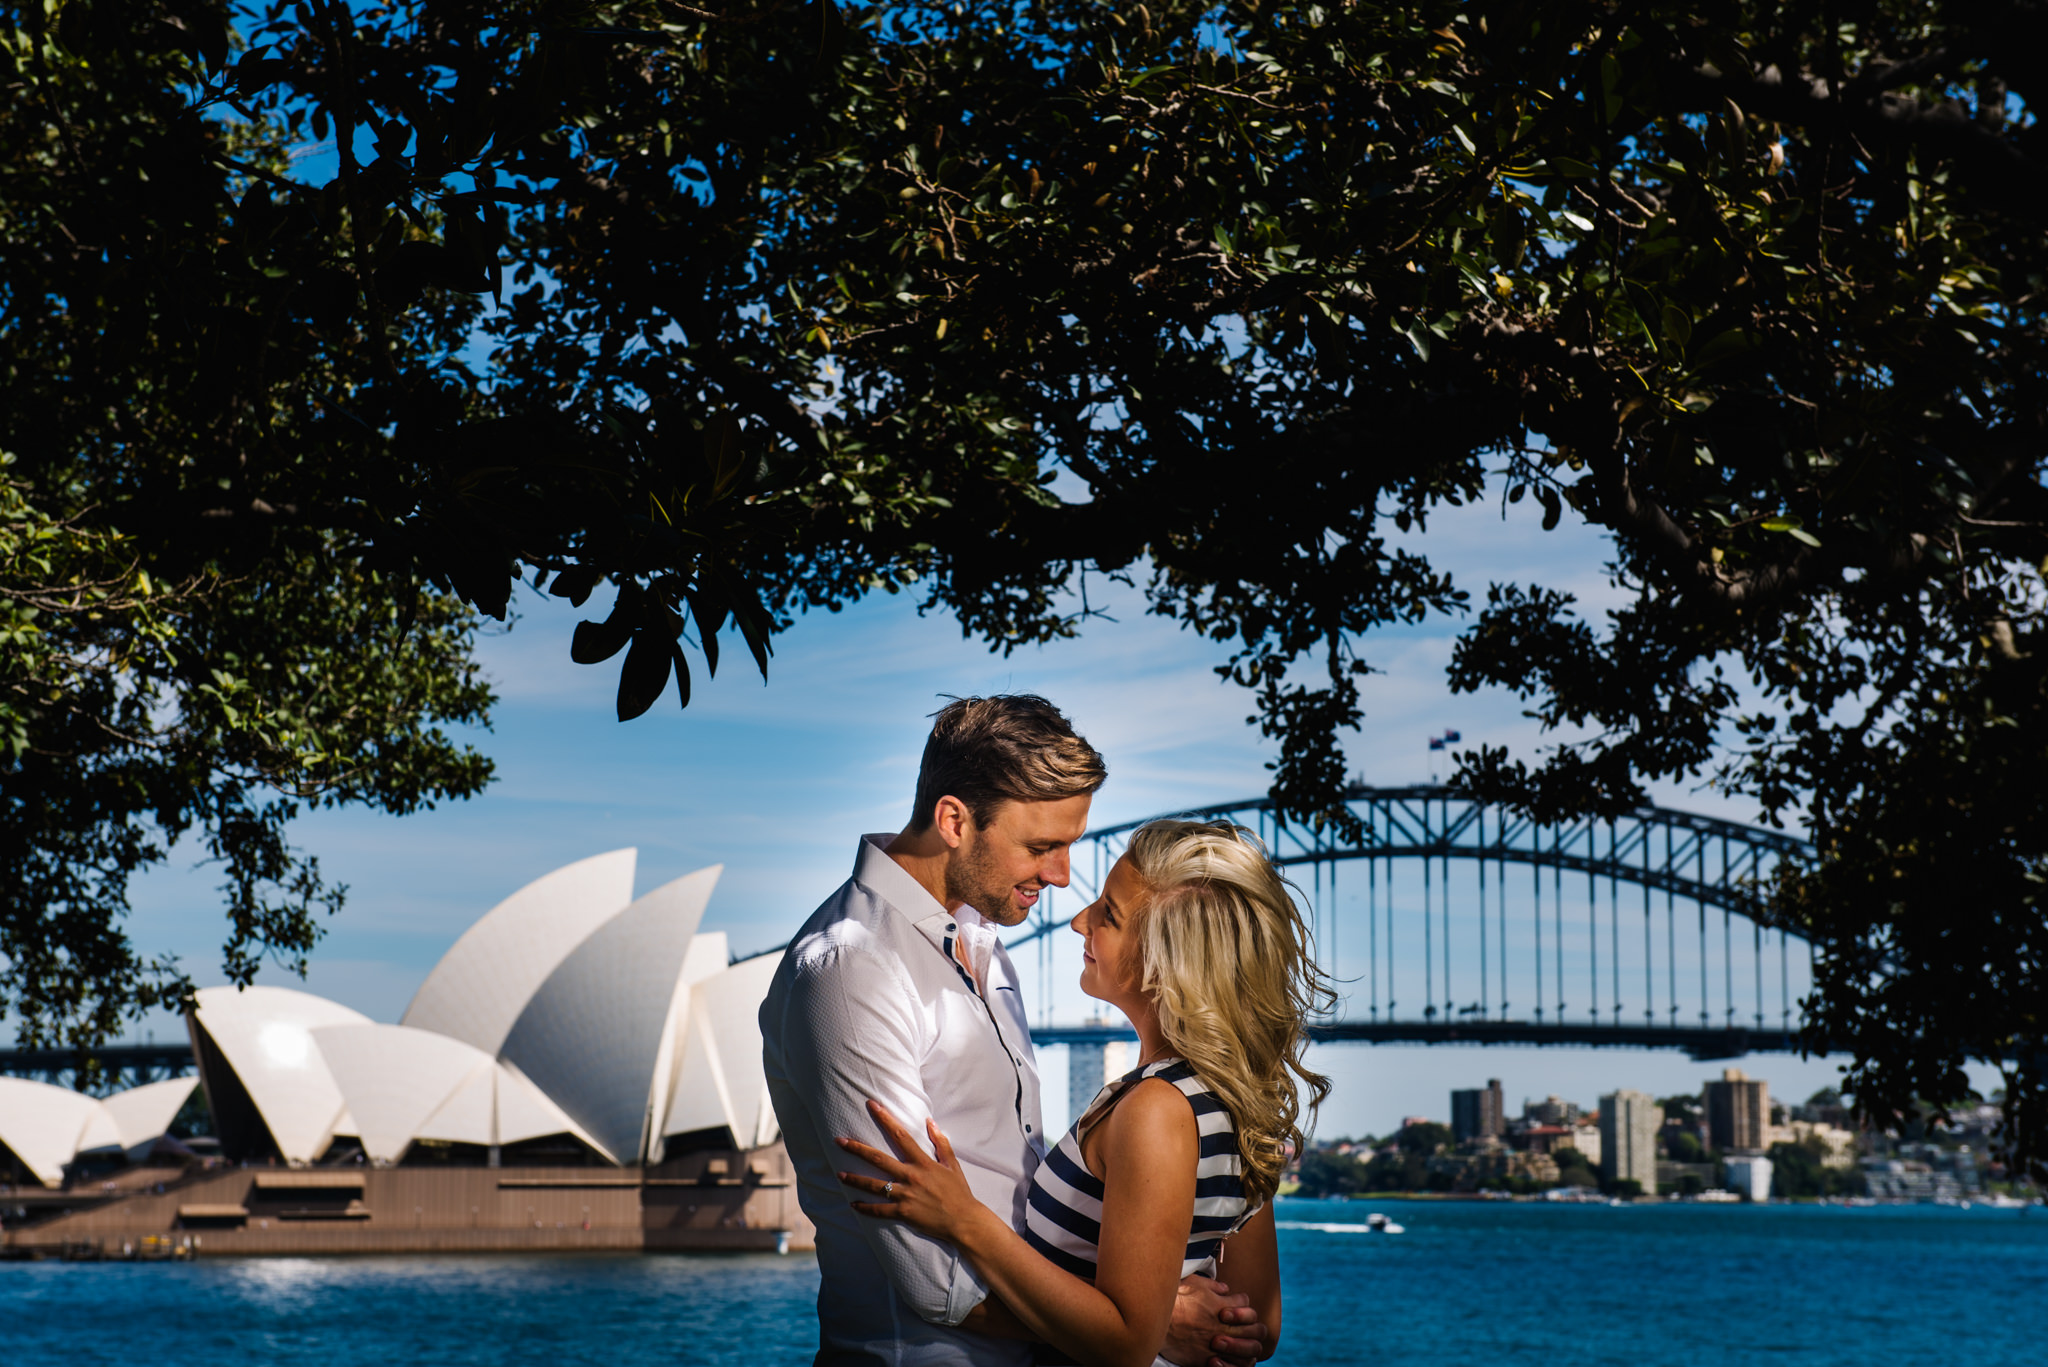 Opera-House-Engagement-Session-1.jpg